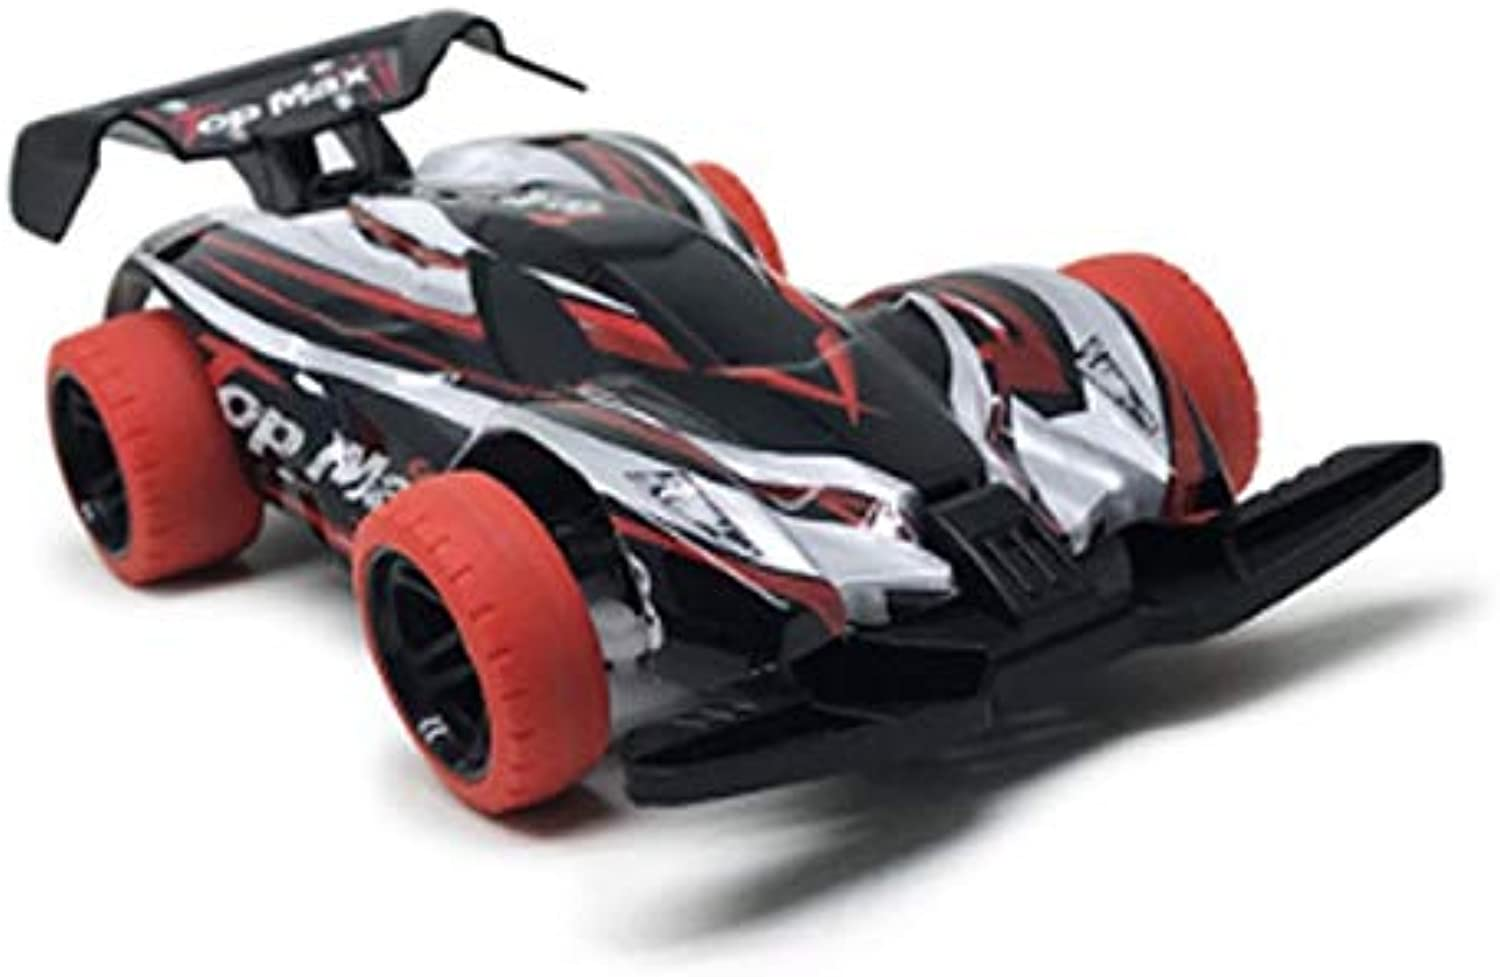 Generic New RC Racing Car High Speed 4WD 2.4G Remote Control OffRoad 1 24 Champion Vehicle Toys Model Kids Hobby Toys& Christmas Gifts red